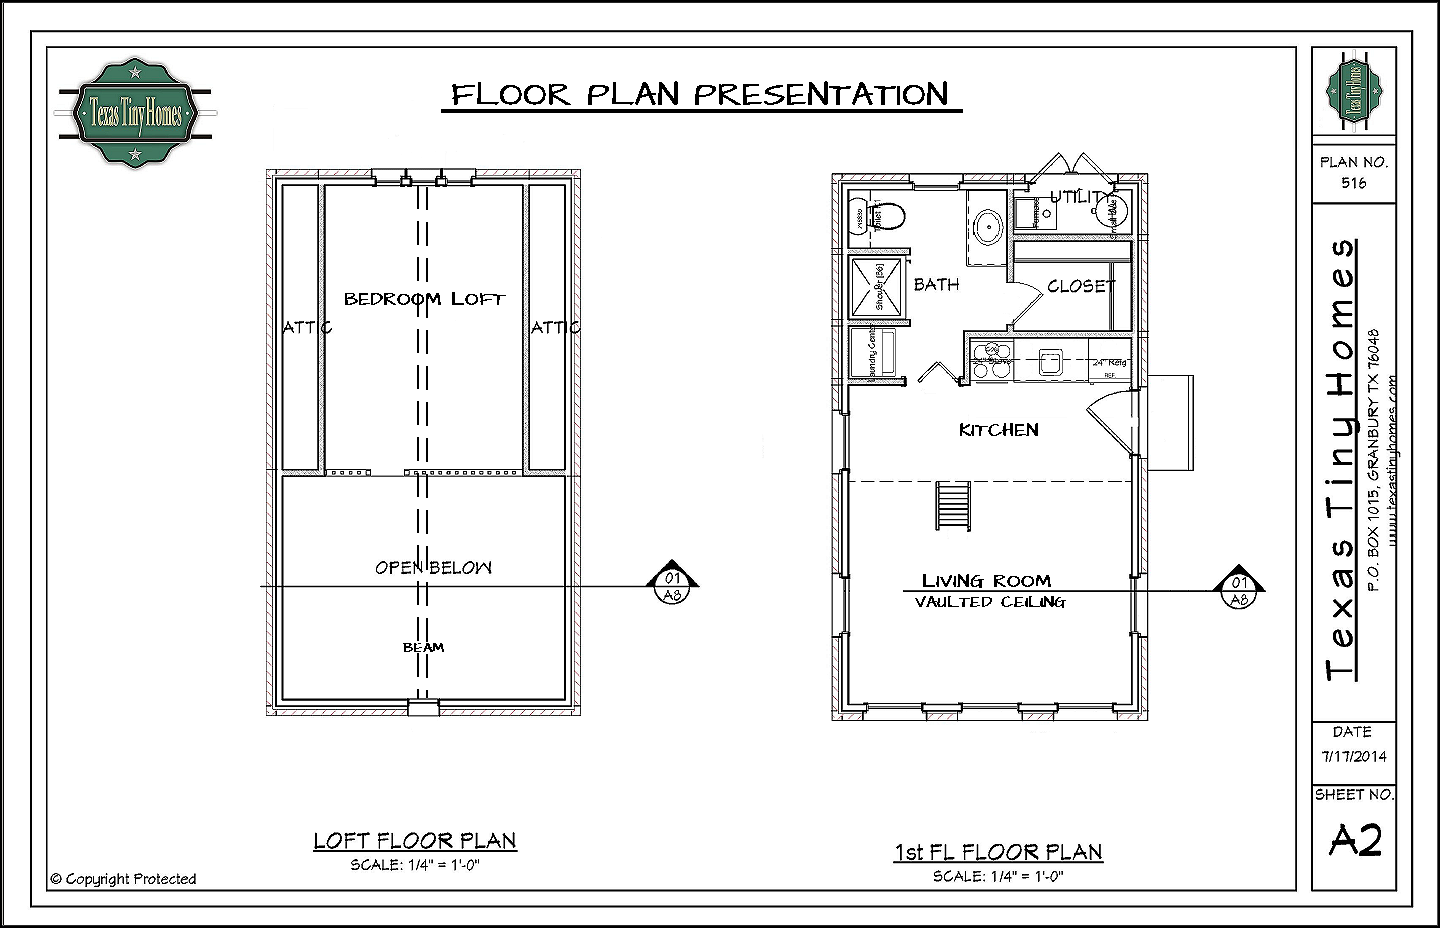 Texas tiny homes plan 516 for Small house blueprints